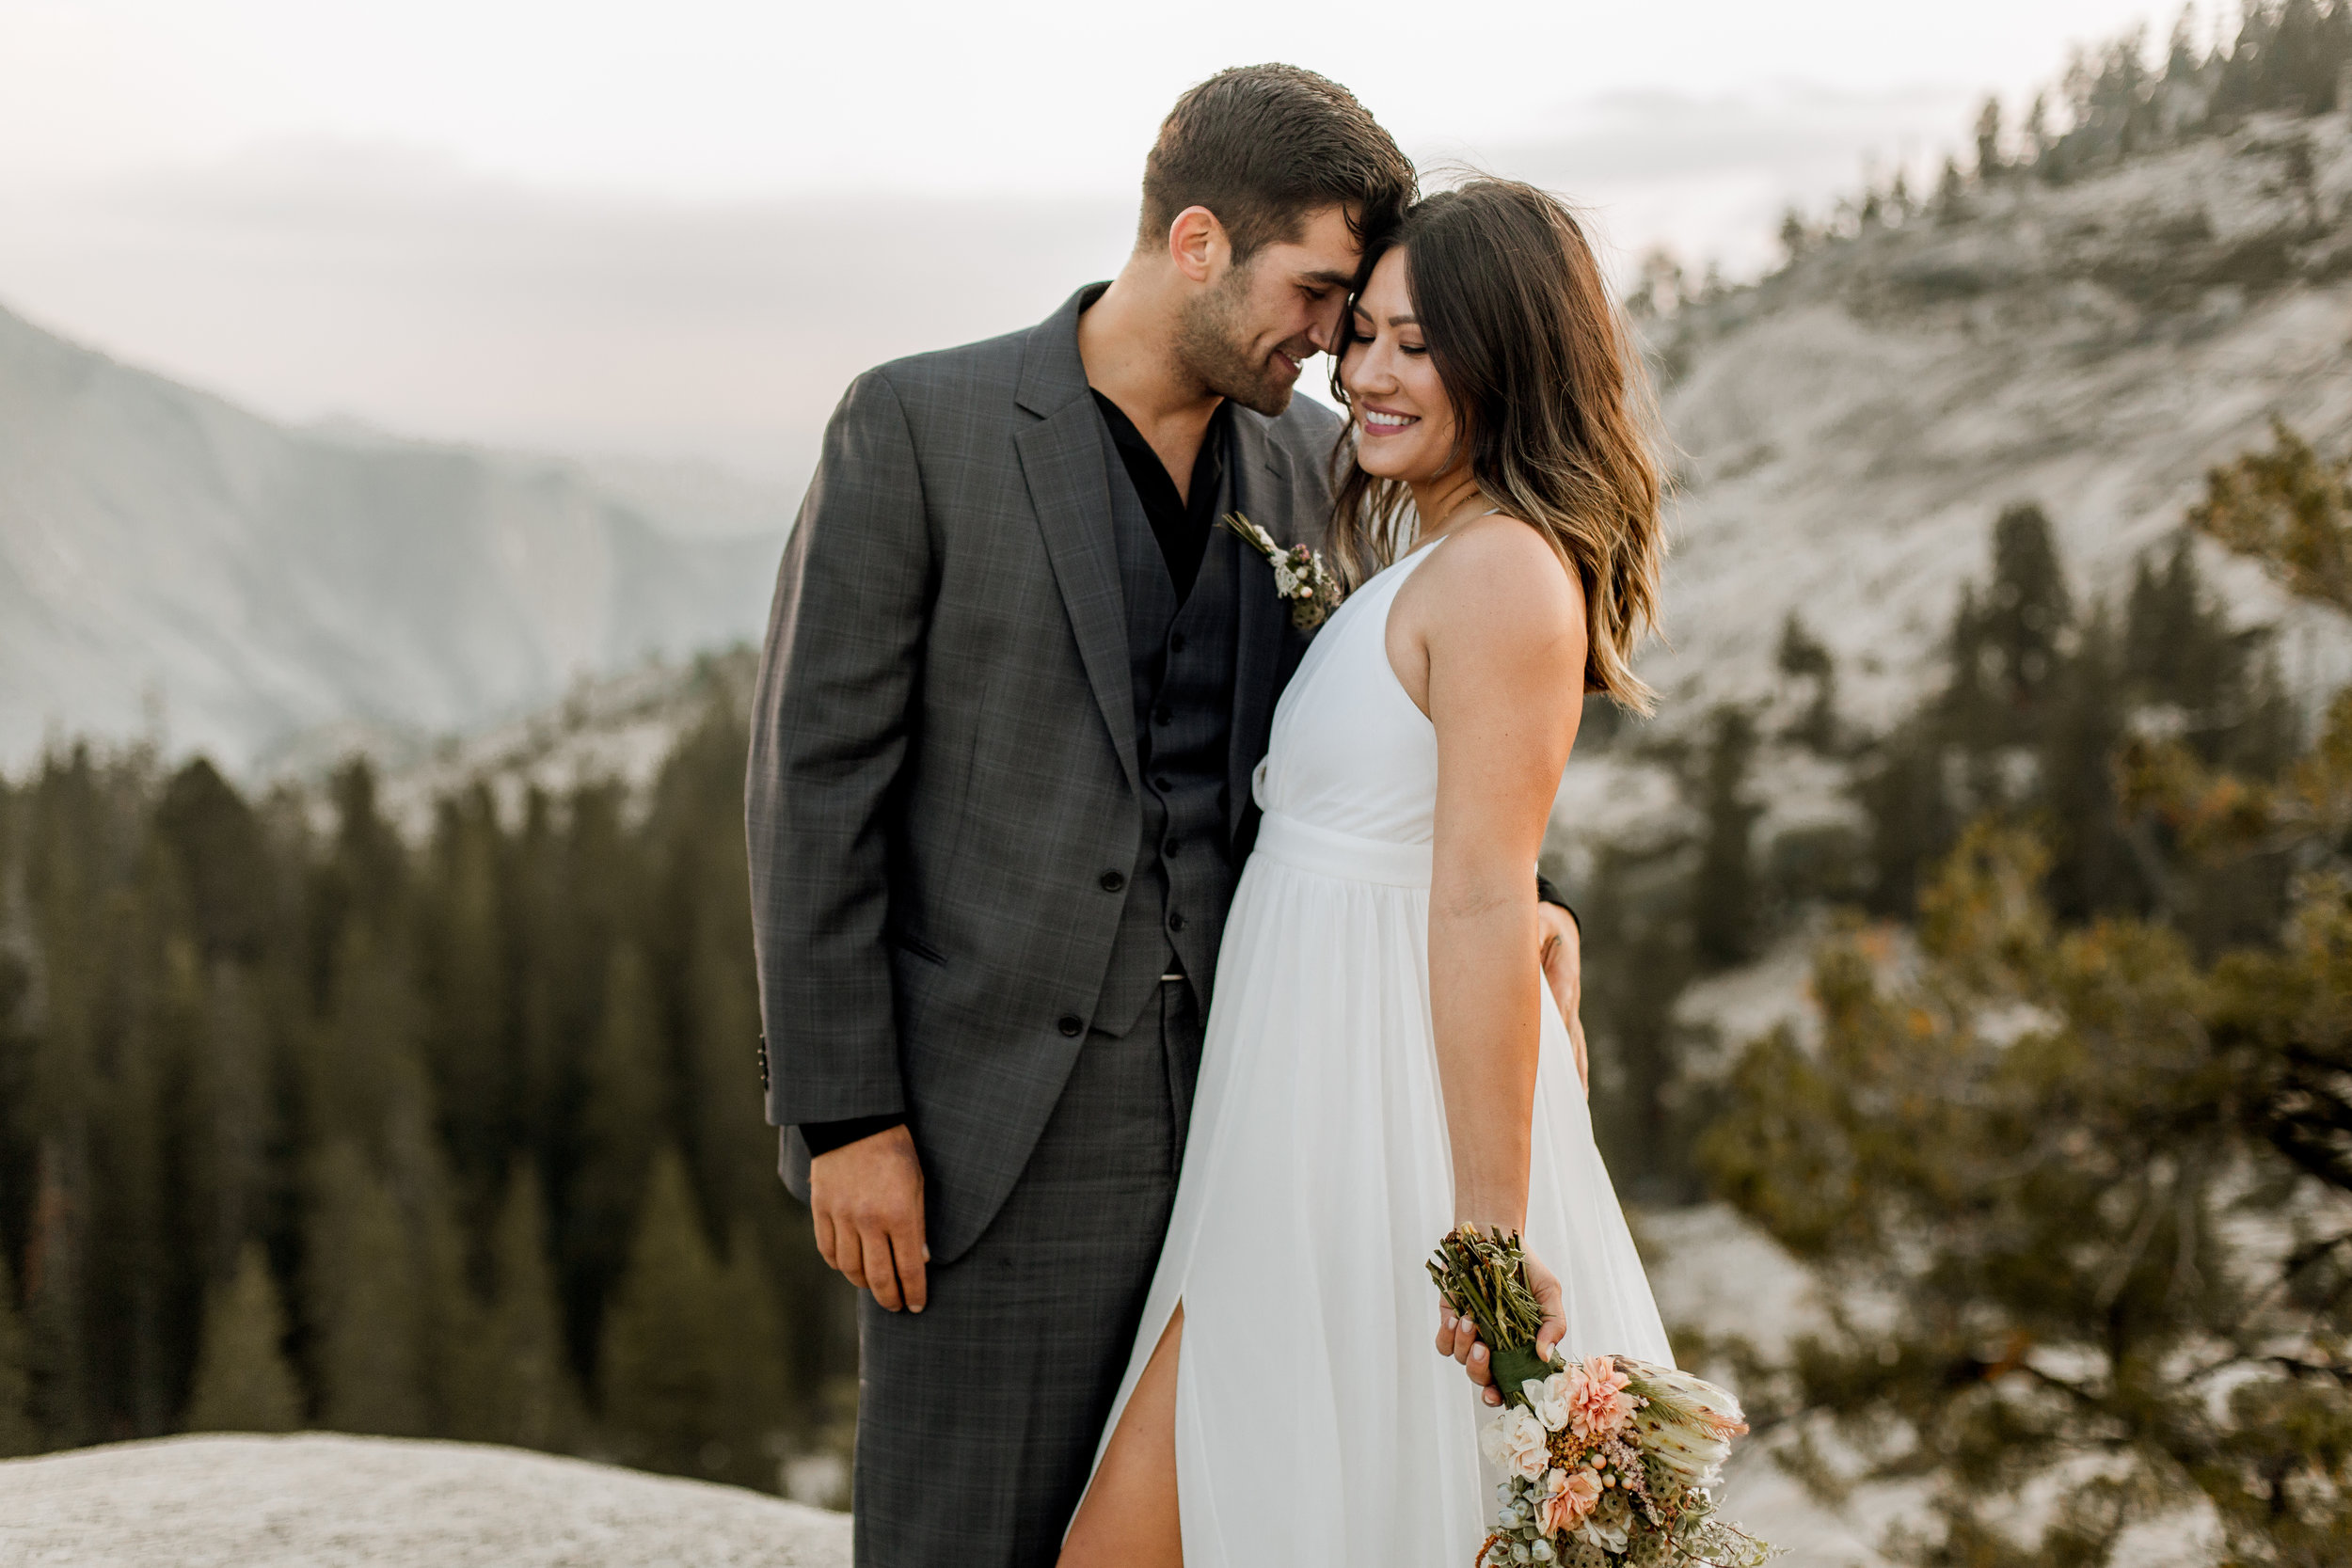 nicole-daacke-photography-yosemite-national-park-fall-elopement-adventurous-free-spirit-boho-bohemian-elopement-olmsted-point-yosemite-california-elope-adventure-elopement-photographer-30.jpg